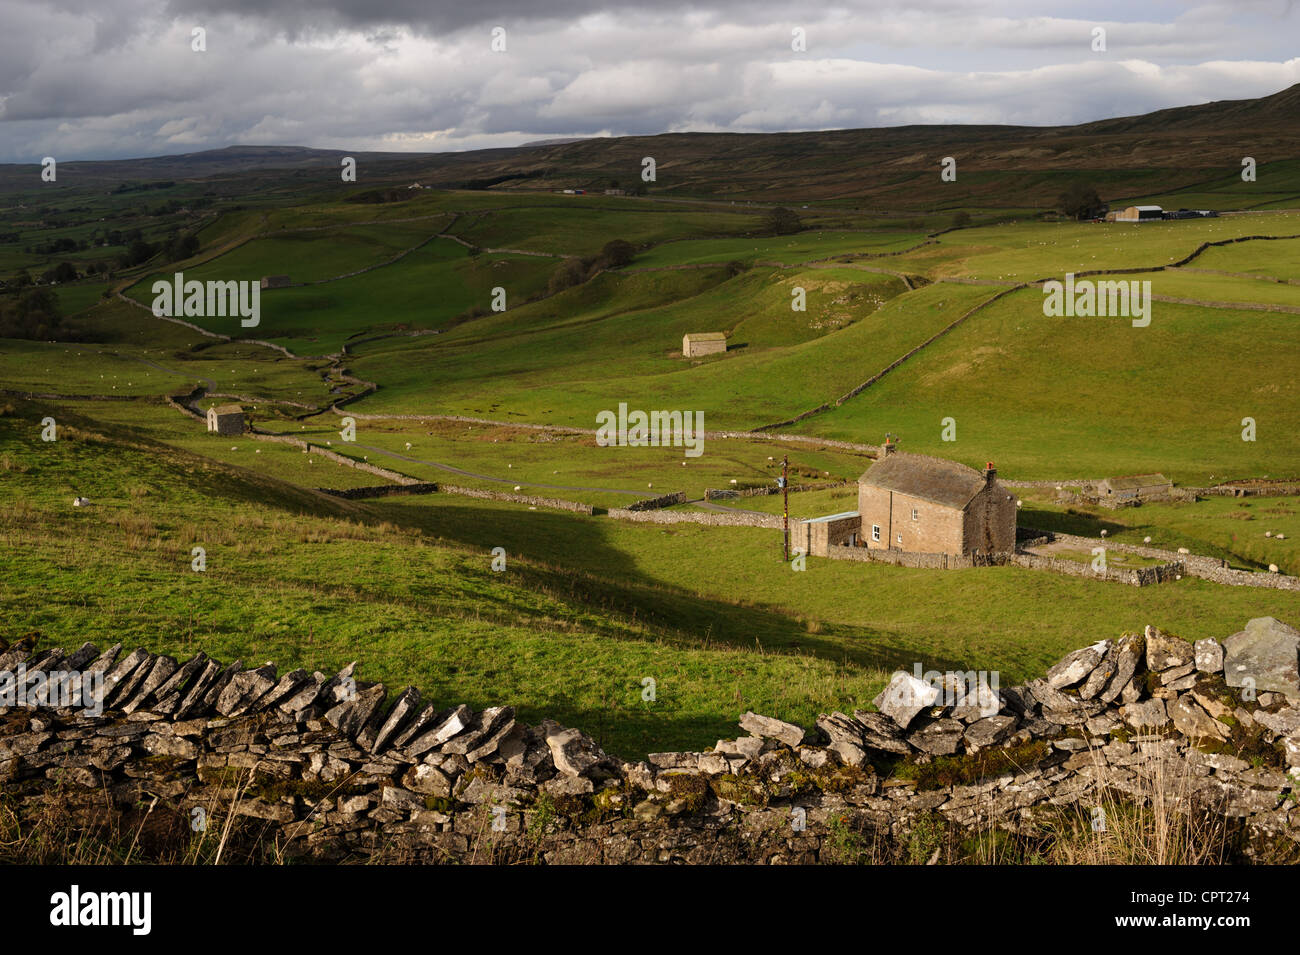 View from North Stainmore towards the Eden Valley and cumbria. United Kingdom - Stock Image